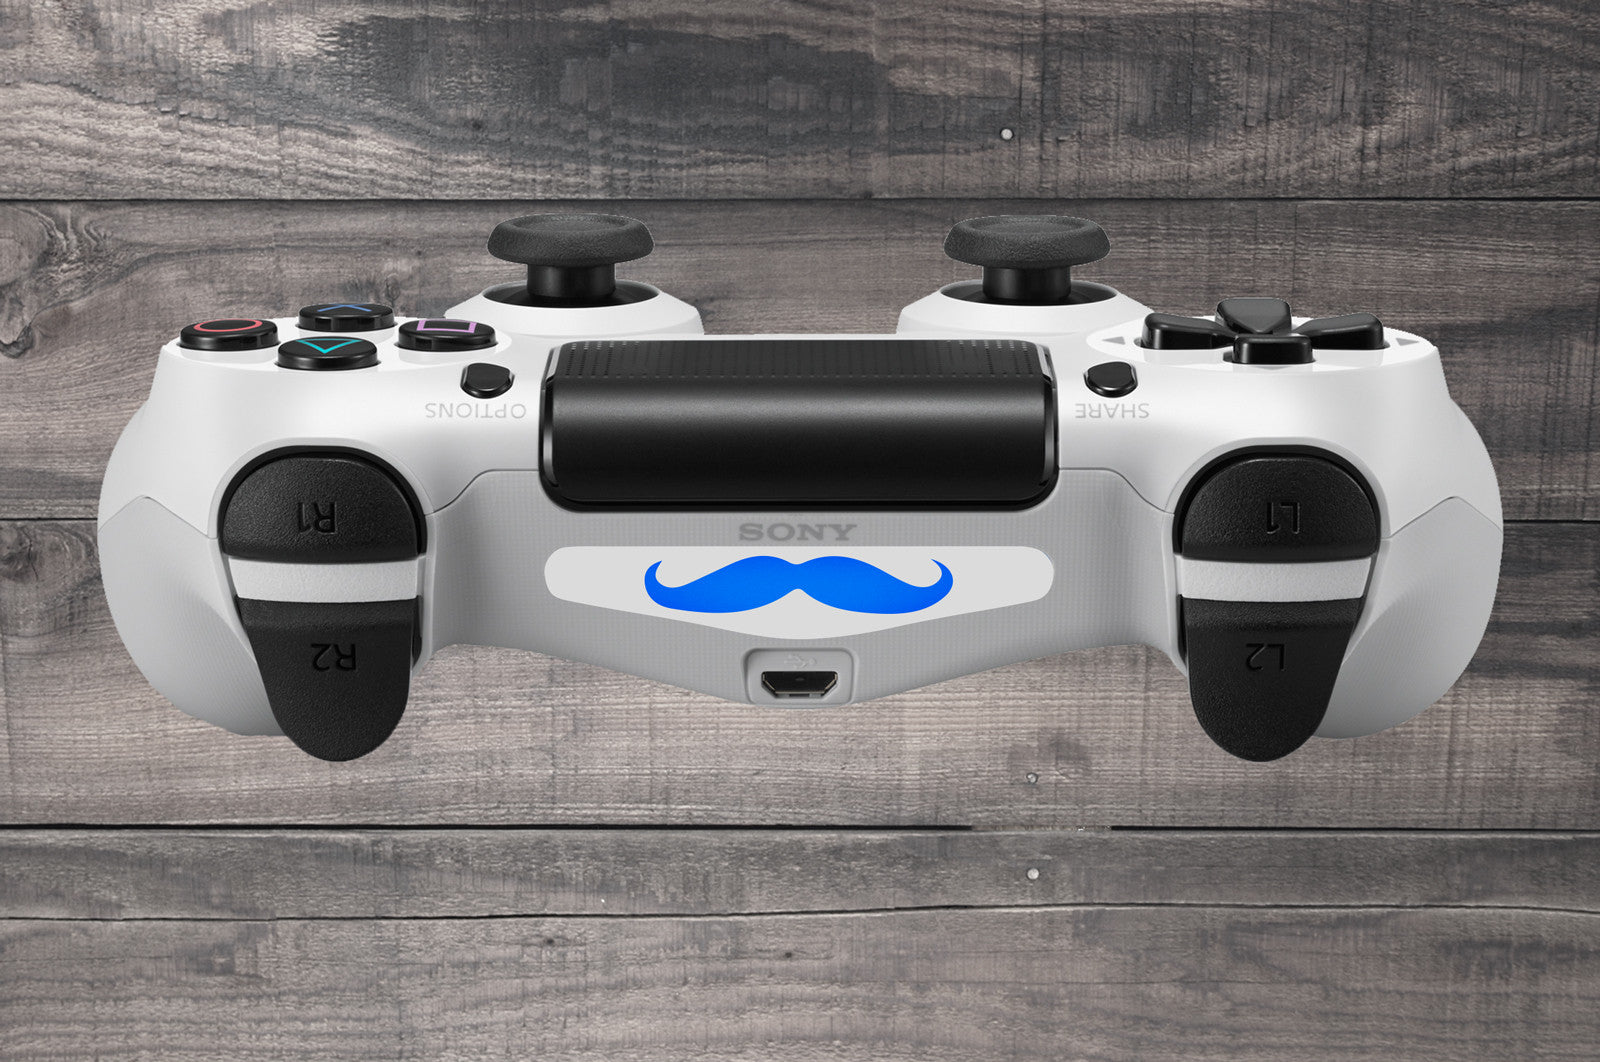 Moustache playstation 4 ps4 dual shock controller light bar moustache ps4 dual shock controller light bar decal white aloadofball